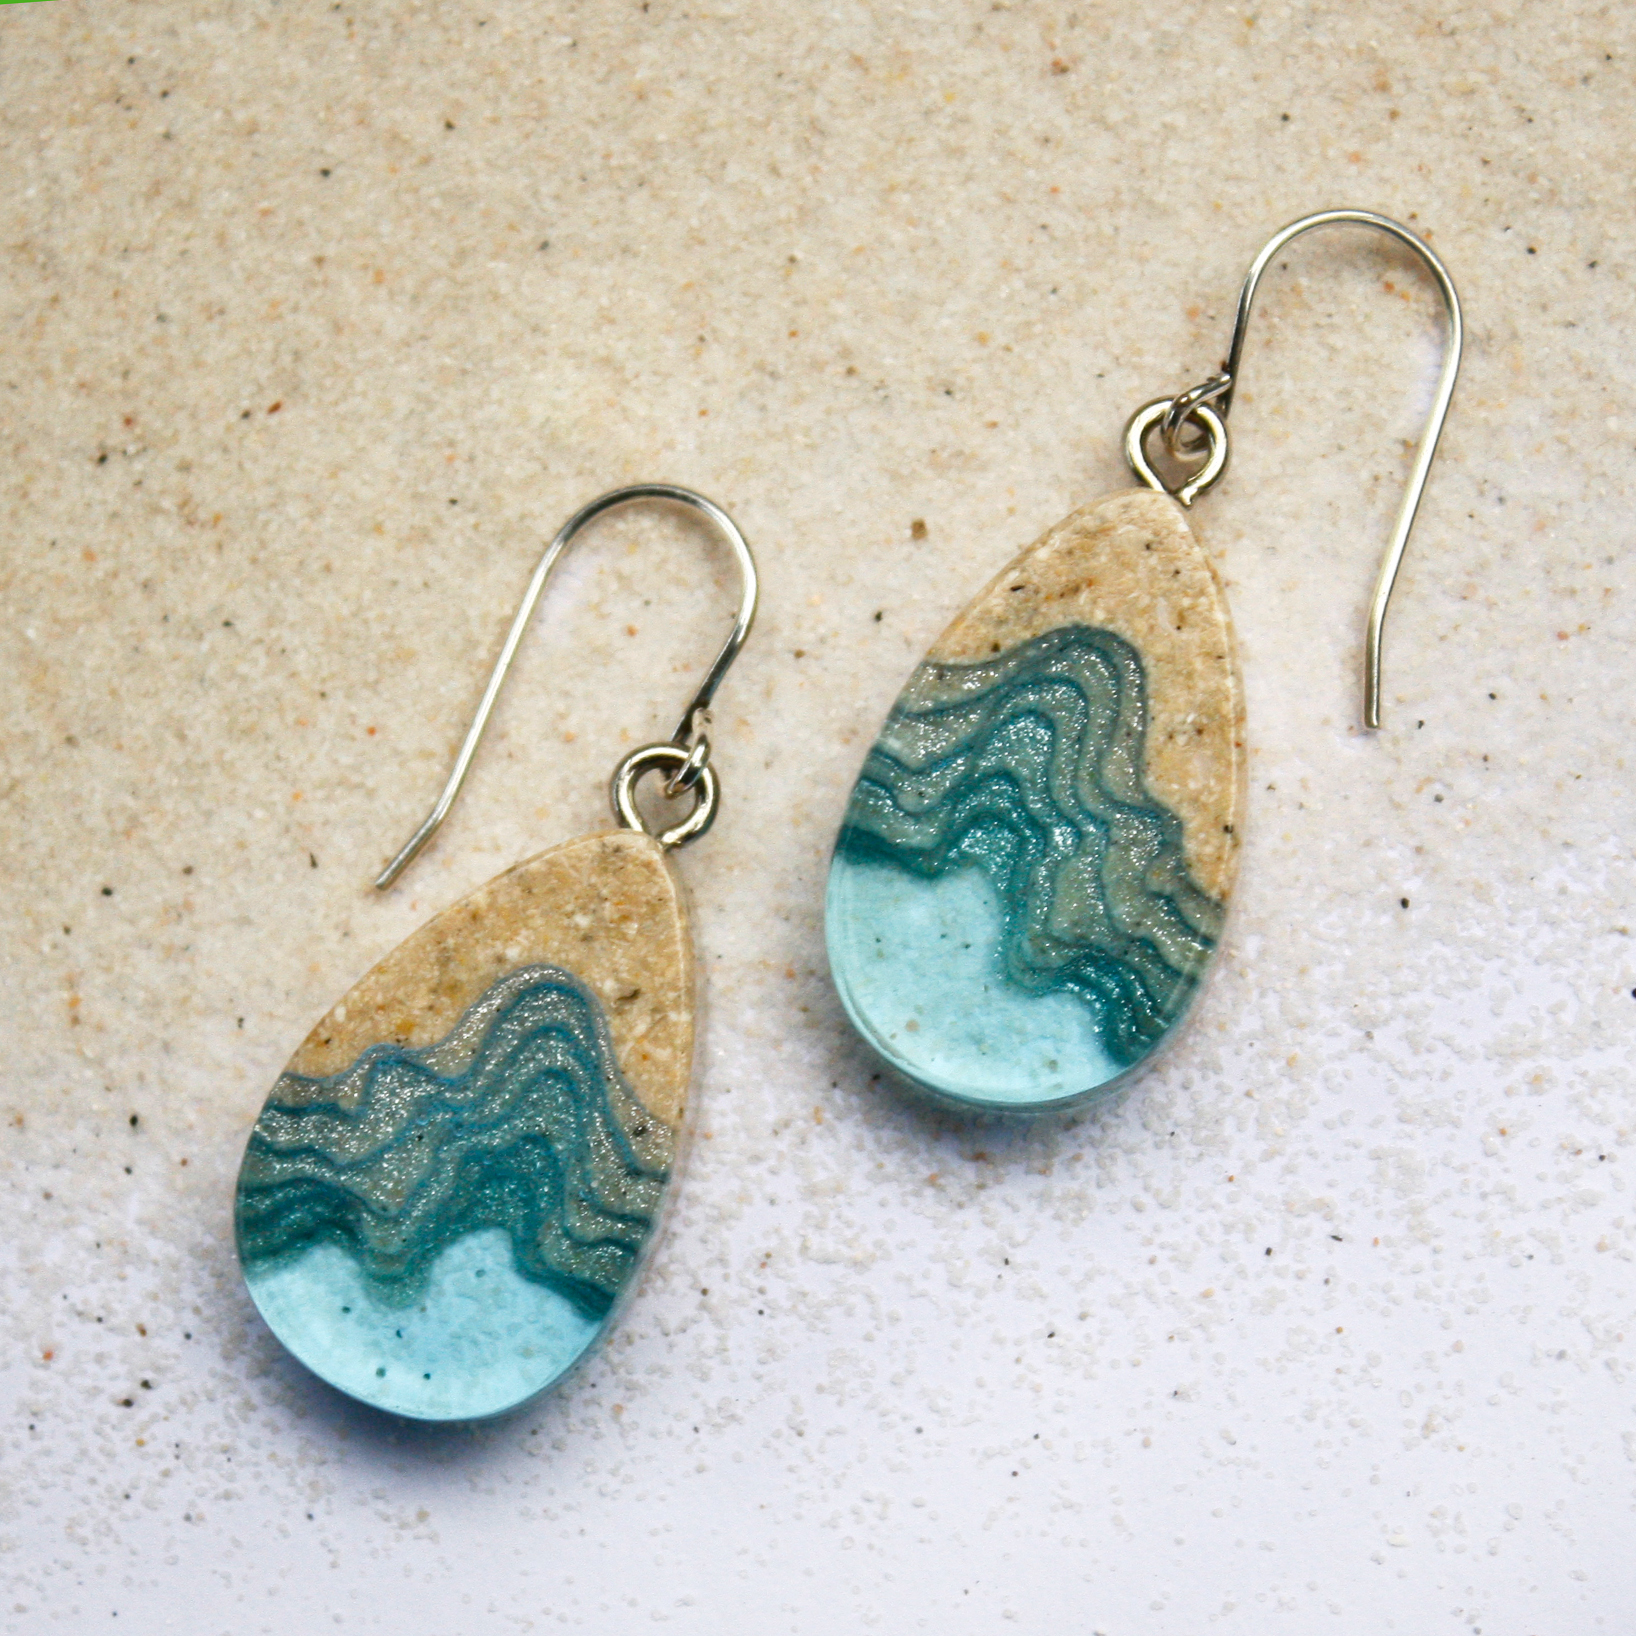 Seashore beach sand and resin dangle earrings